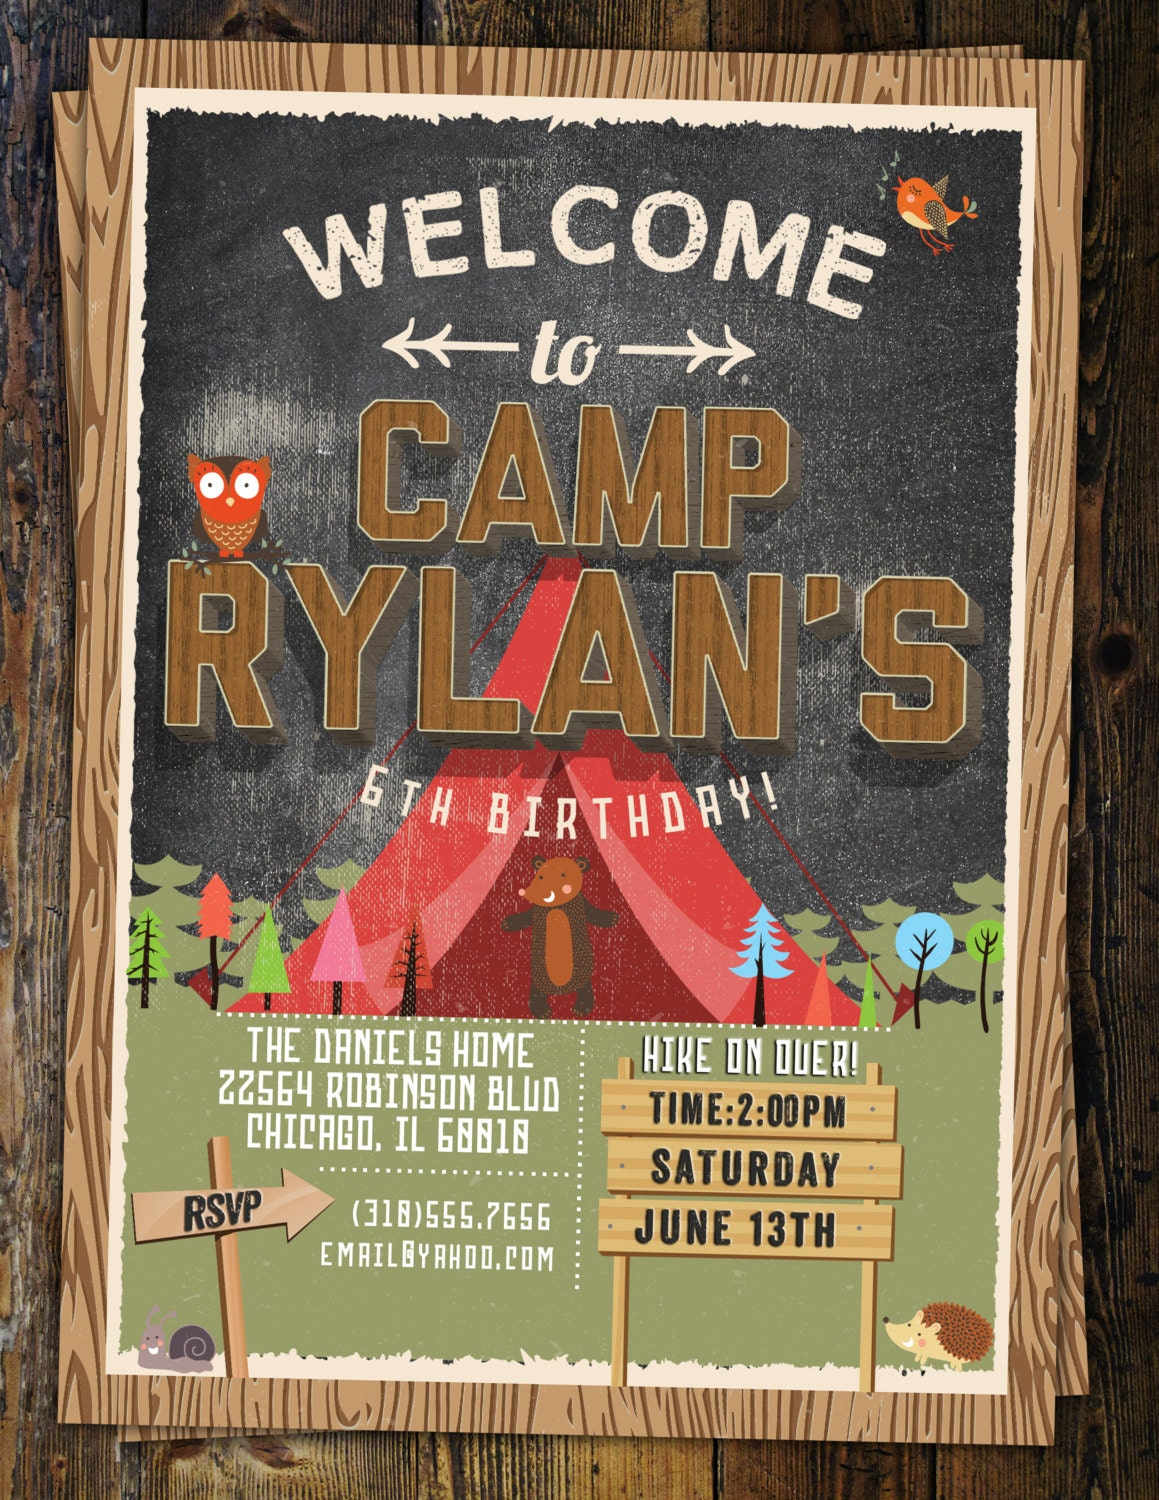 Camp birthday camping birthday animals invitation invite camp birthday camping birthday animals invitation invite outdoor adventure party wilderness lumberjack boy scout kids birthday filmwisefo Images